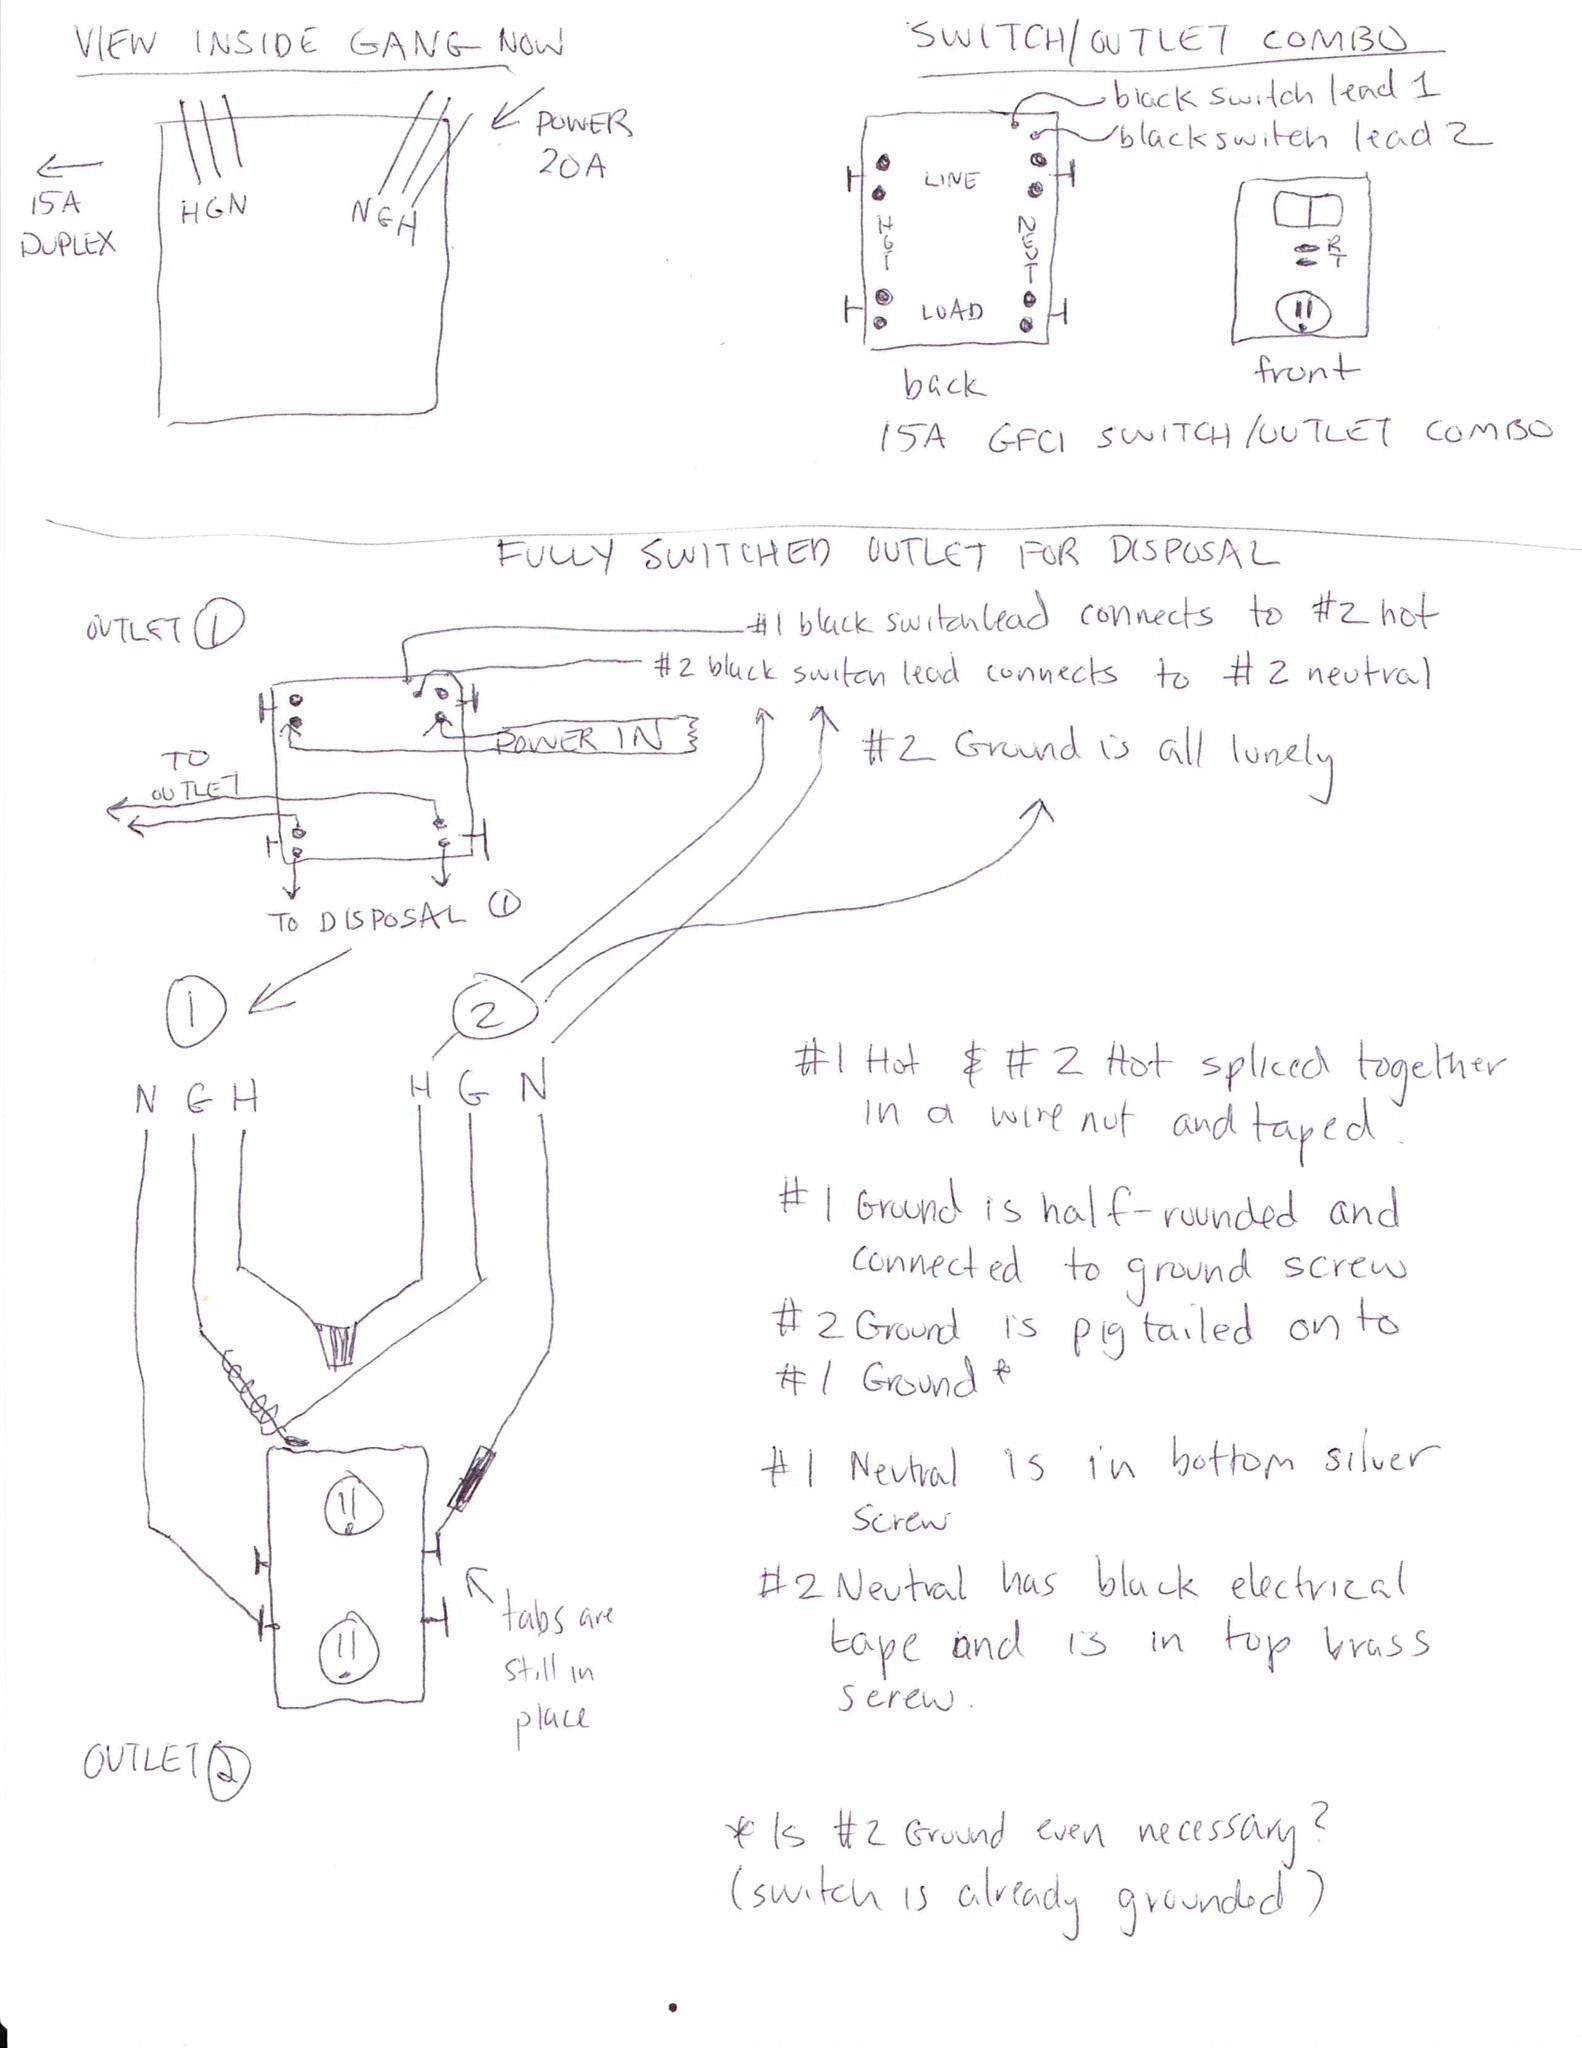 wiring diagram switched gfci outlet 2007 toyota fj cruiser headlight garbage disposal combination switch and to